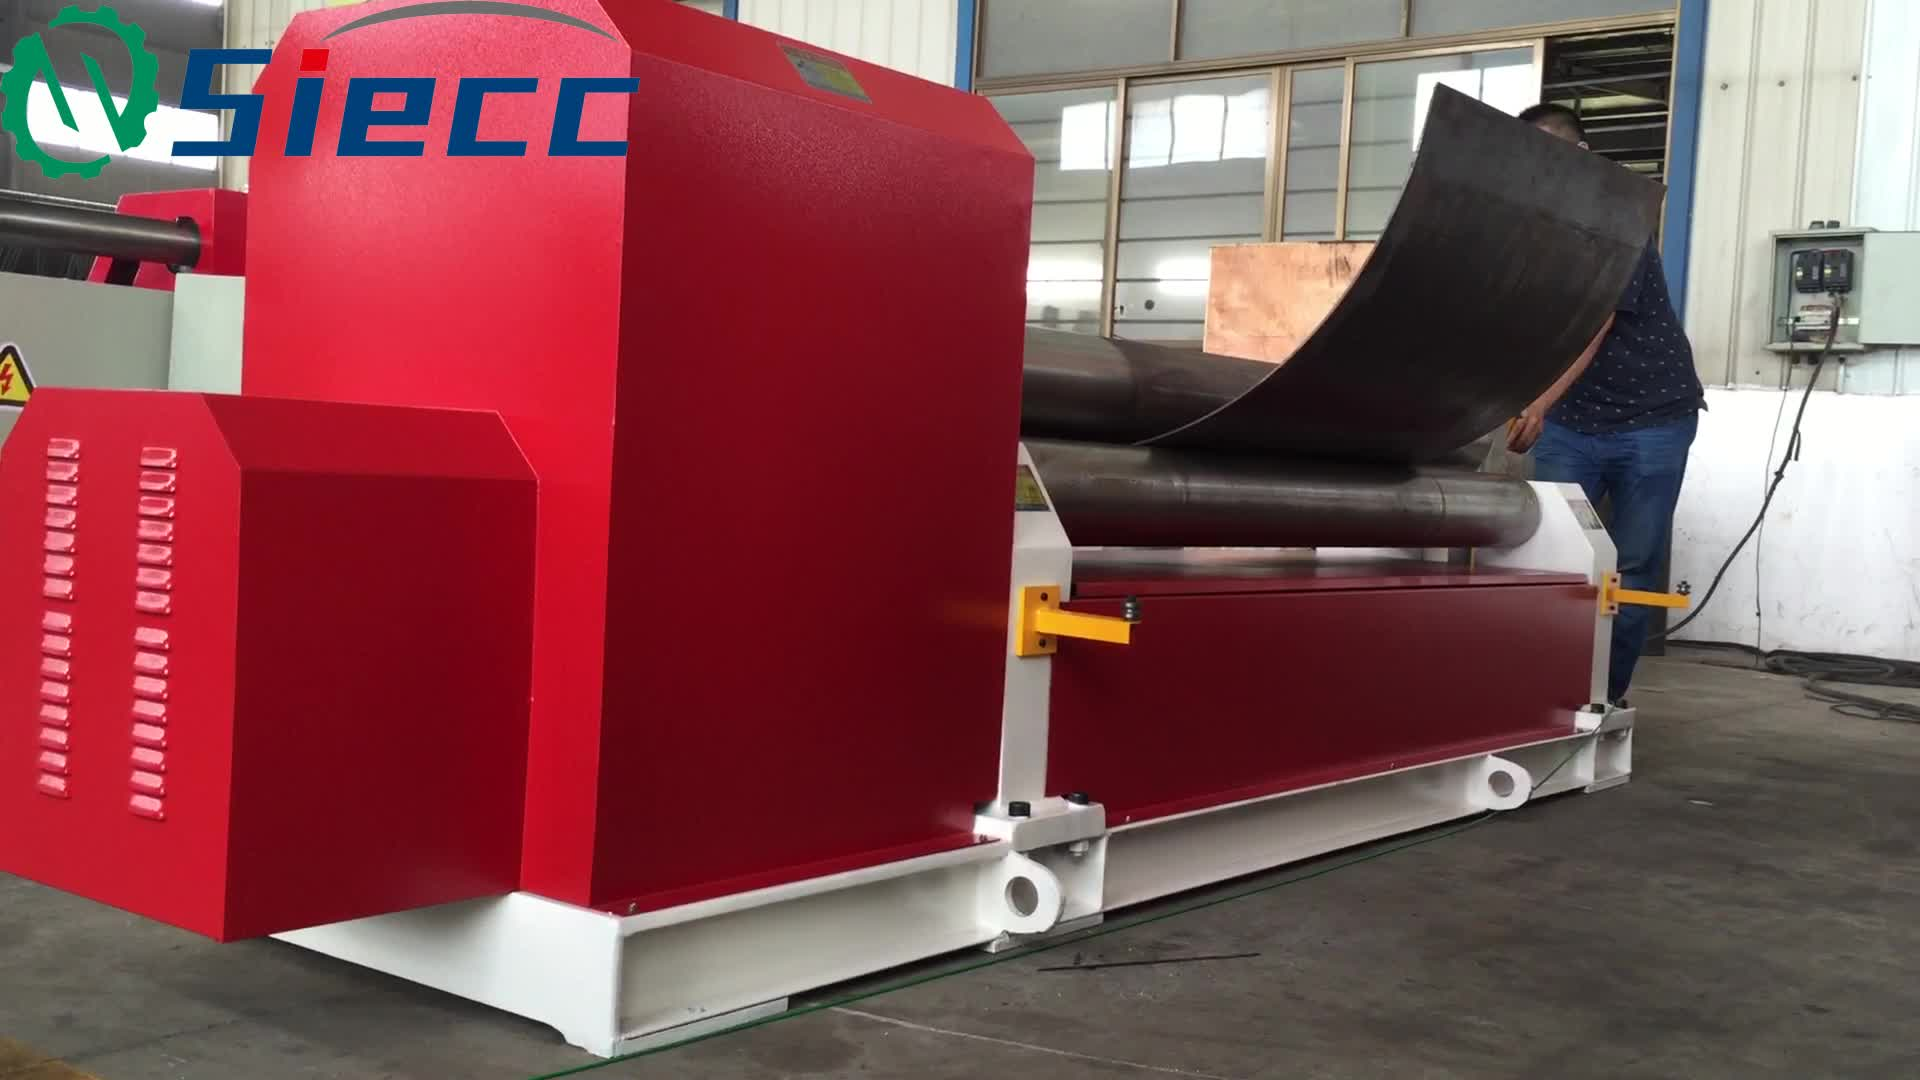 3 roller aluminium small iron metal sheet plate manual roll bending machine, cold used steel rolling machine for sale